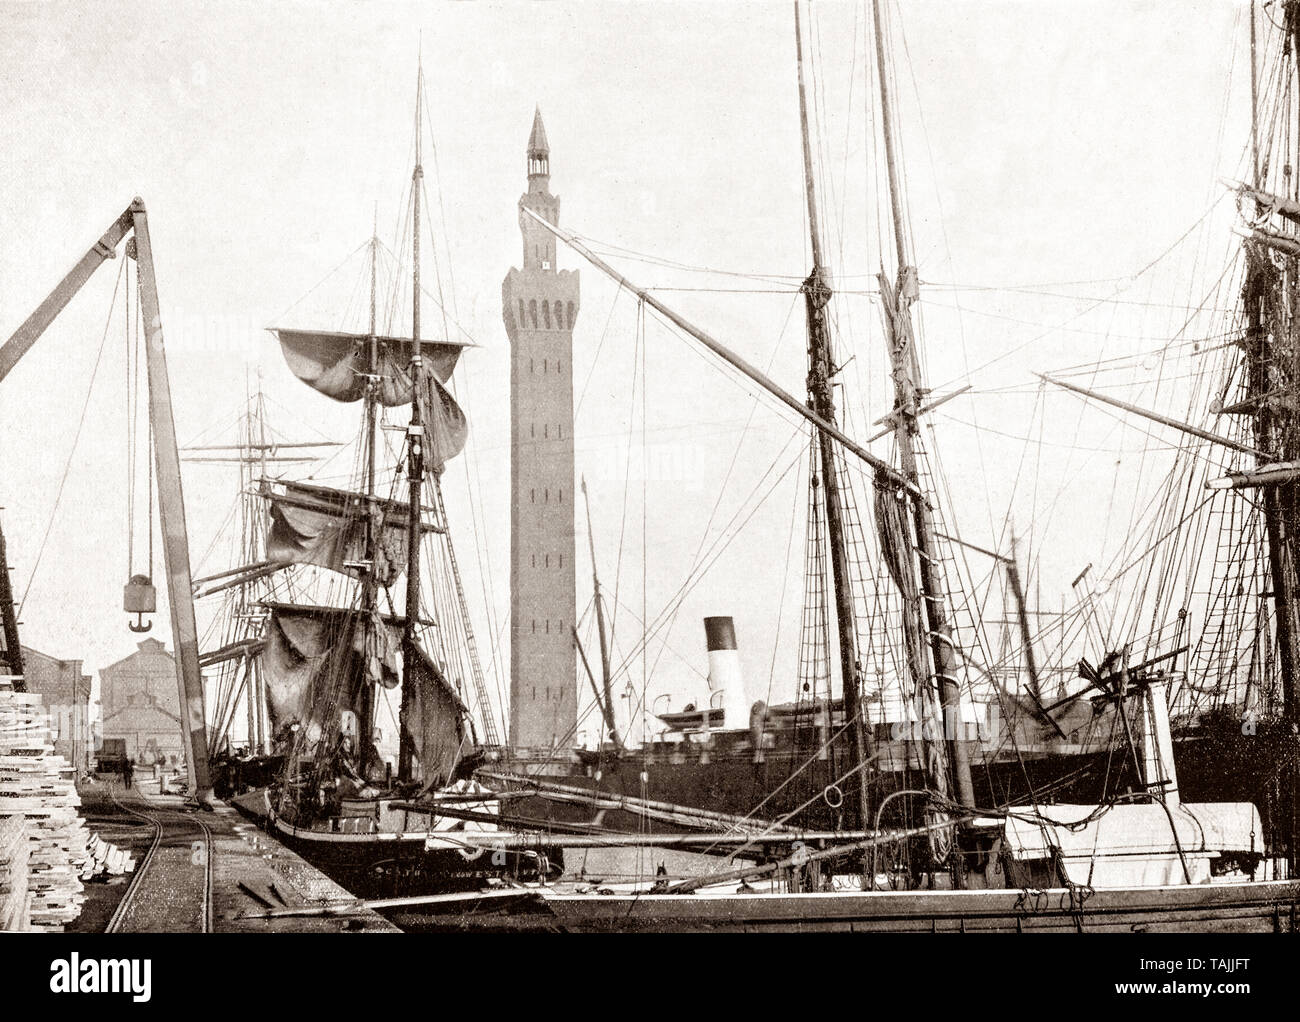 A late 19th Century view of  the Hydraulic Dock Tower  behind shipping in Grimsby, also Great Grimsby, a large coastal English seaport and administrative centre in North East Lincolnshire, on the South Bank of the Humber Estuary, close to where it reaches the North Sea. Many docks were completed in the mid-19th century with the arrival of the railway in 1848, after which it boasted the largest fishing fleet in the world by the mid-20th century, until fishing declined. - Stock Image